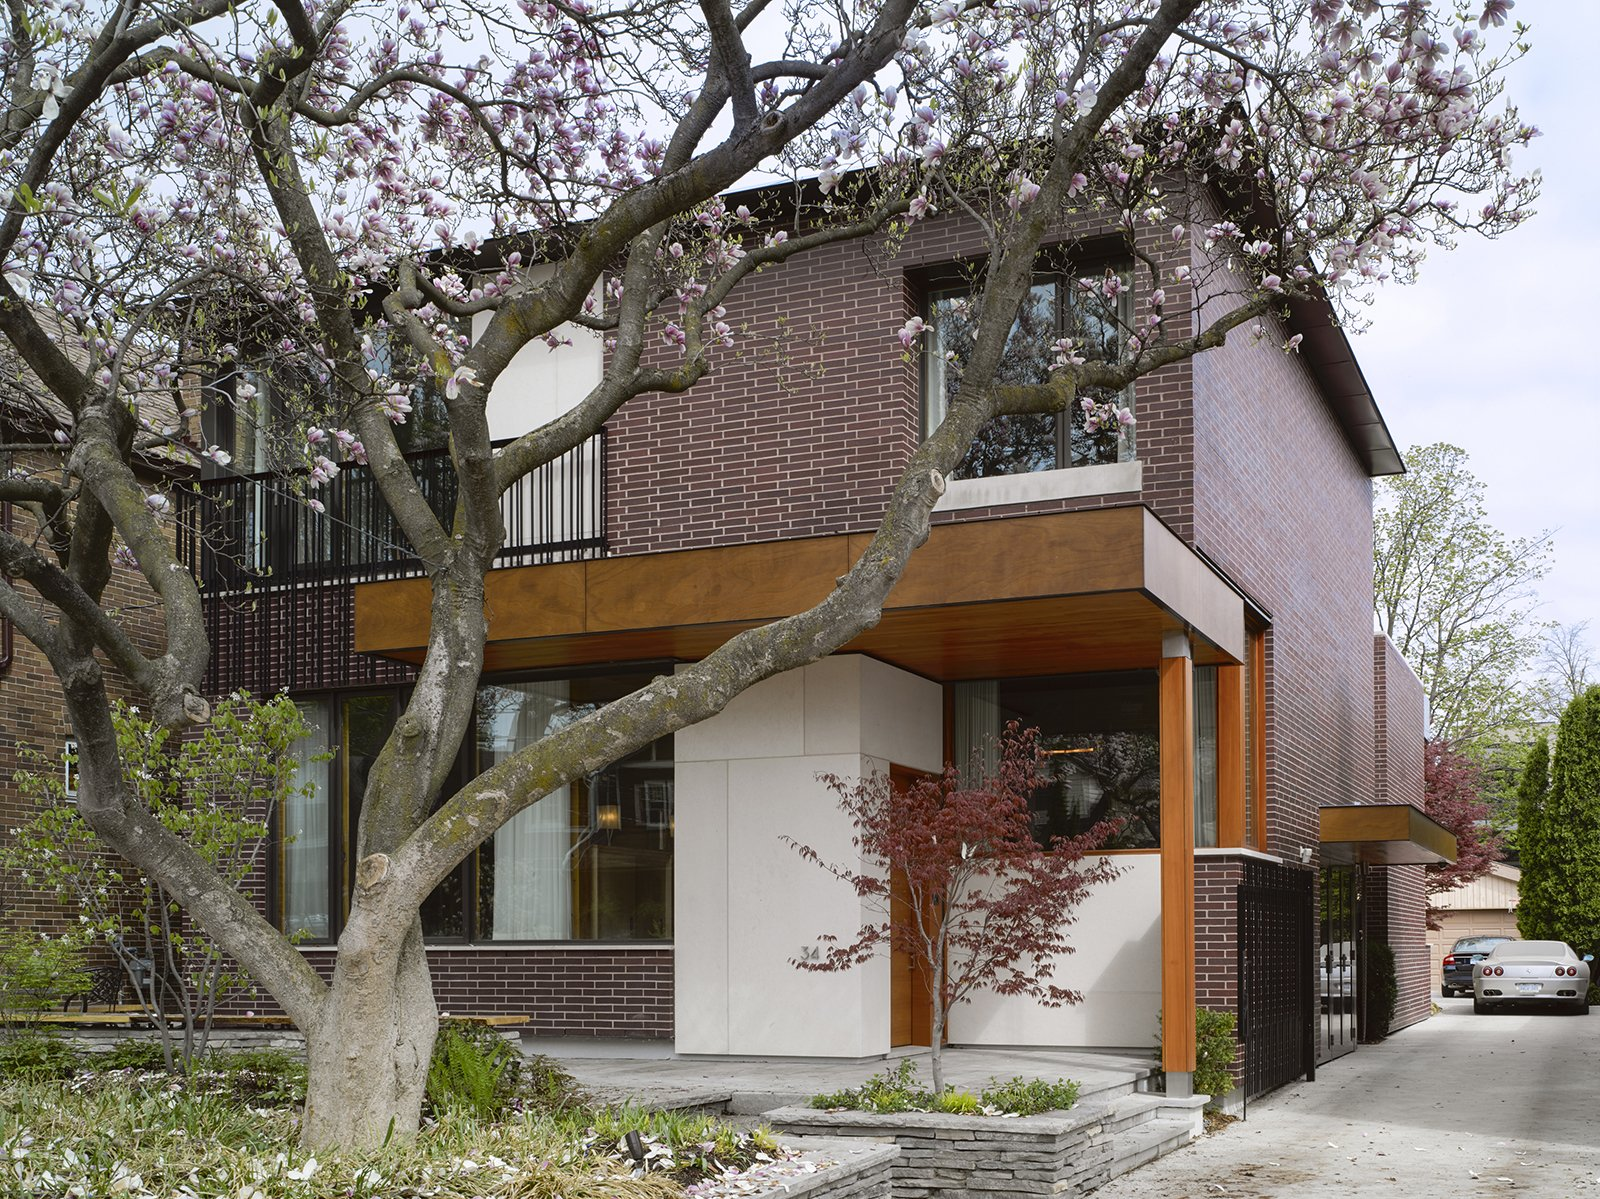 """The house responds to its site. """"The design was directly influenced by two mature, century-old magnolia trees in the front and a Japanese maple in the rear,"""" Tedesco says. """"The location of widows and main program spaces, such as the living room and master bedroom, were strategically placed to take full advantage of views of these trees. Because the trees are fully visible from the interior, seasons and the trees' yearly blooming cycles play a significant role in daily life—they're not just landscape elements. The window sizes and their locations were coordinated with the existing trees to take advantage of passive solar shading in the summer and solar gain in the winter months when the trees do not have foliage.""""  Photo 2 of 11 in Smart Tech Makes this Modern Home Ultra Energy Efficient"""